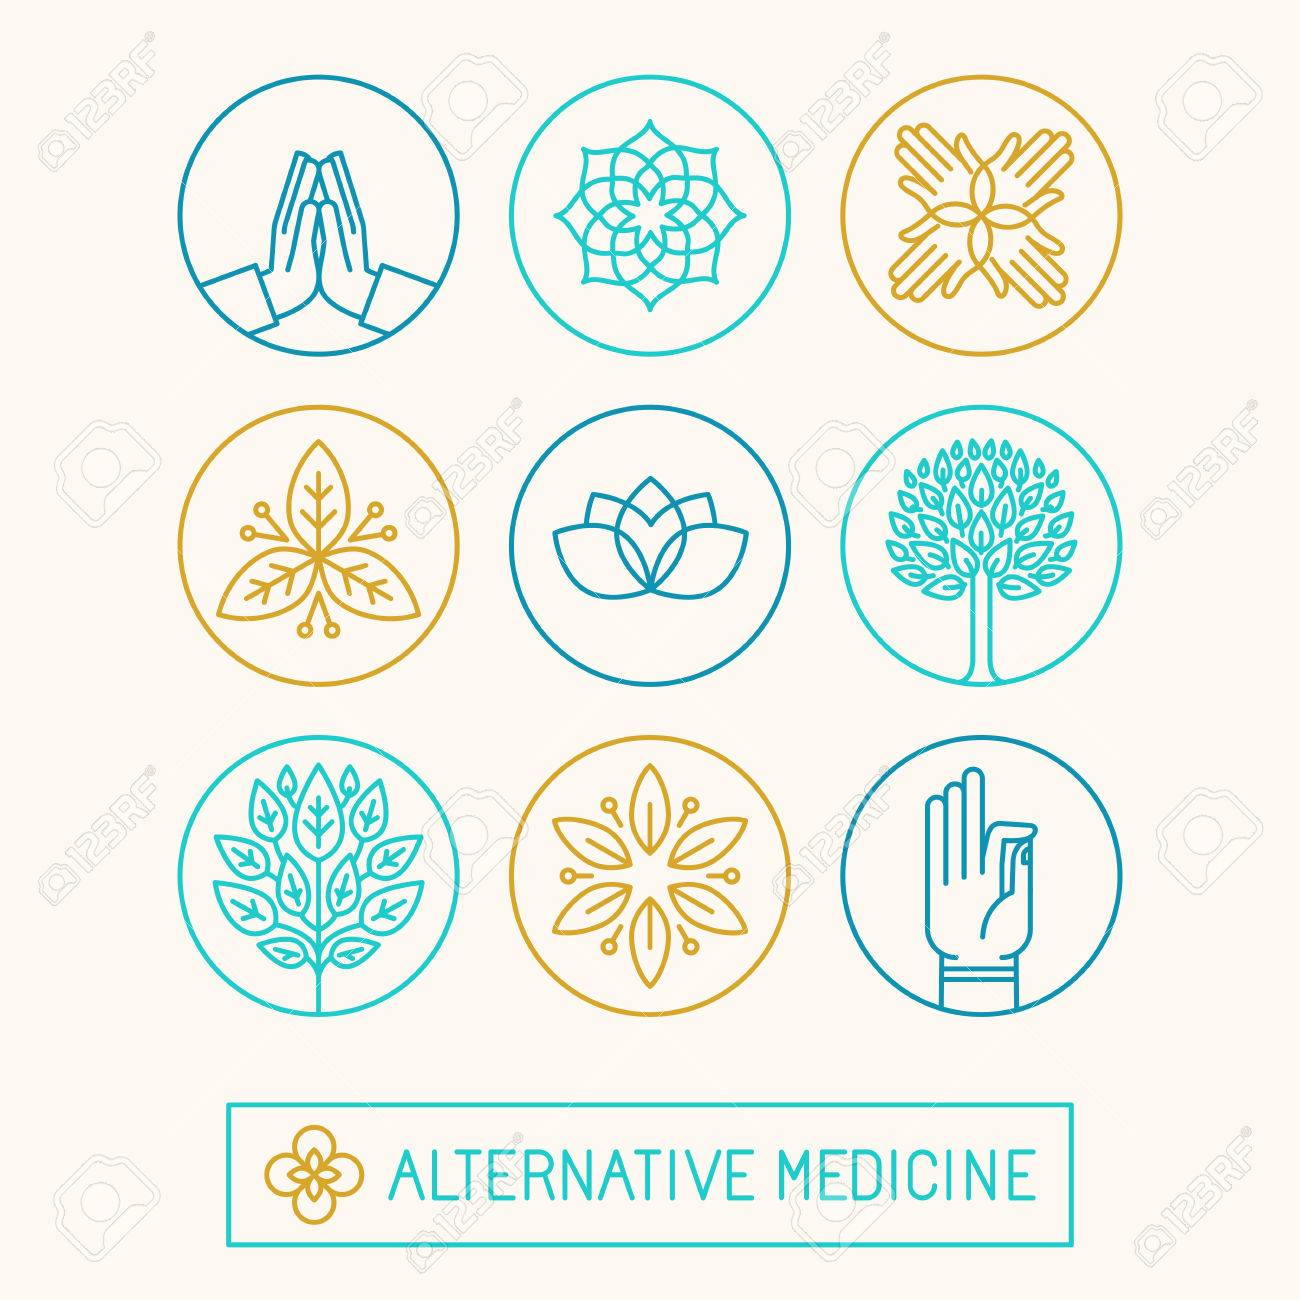 Vector set of icon design templates and icons in trendy linear style - holistic and alternative medicine - 48487861